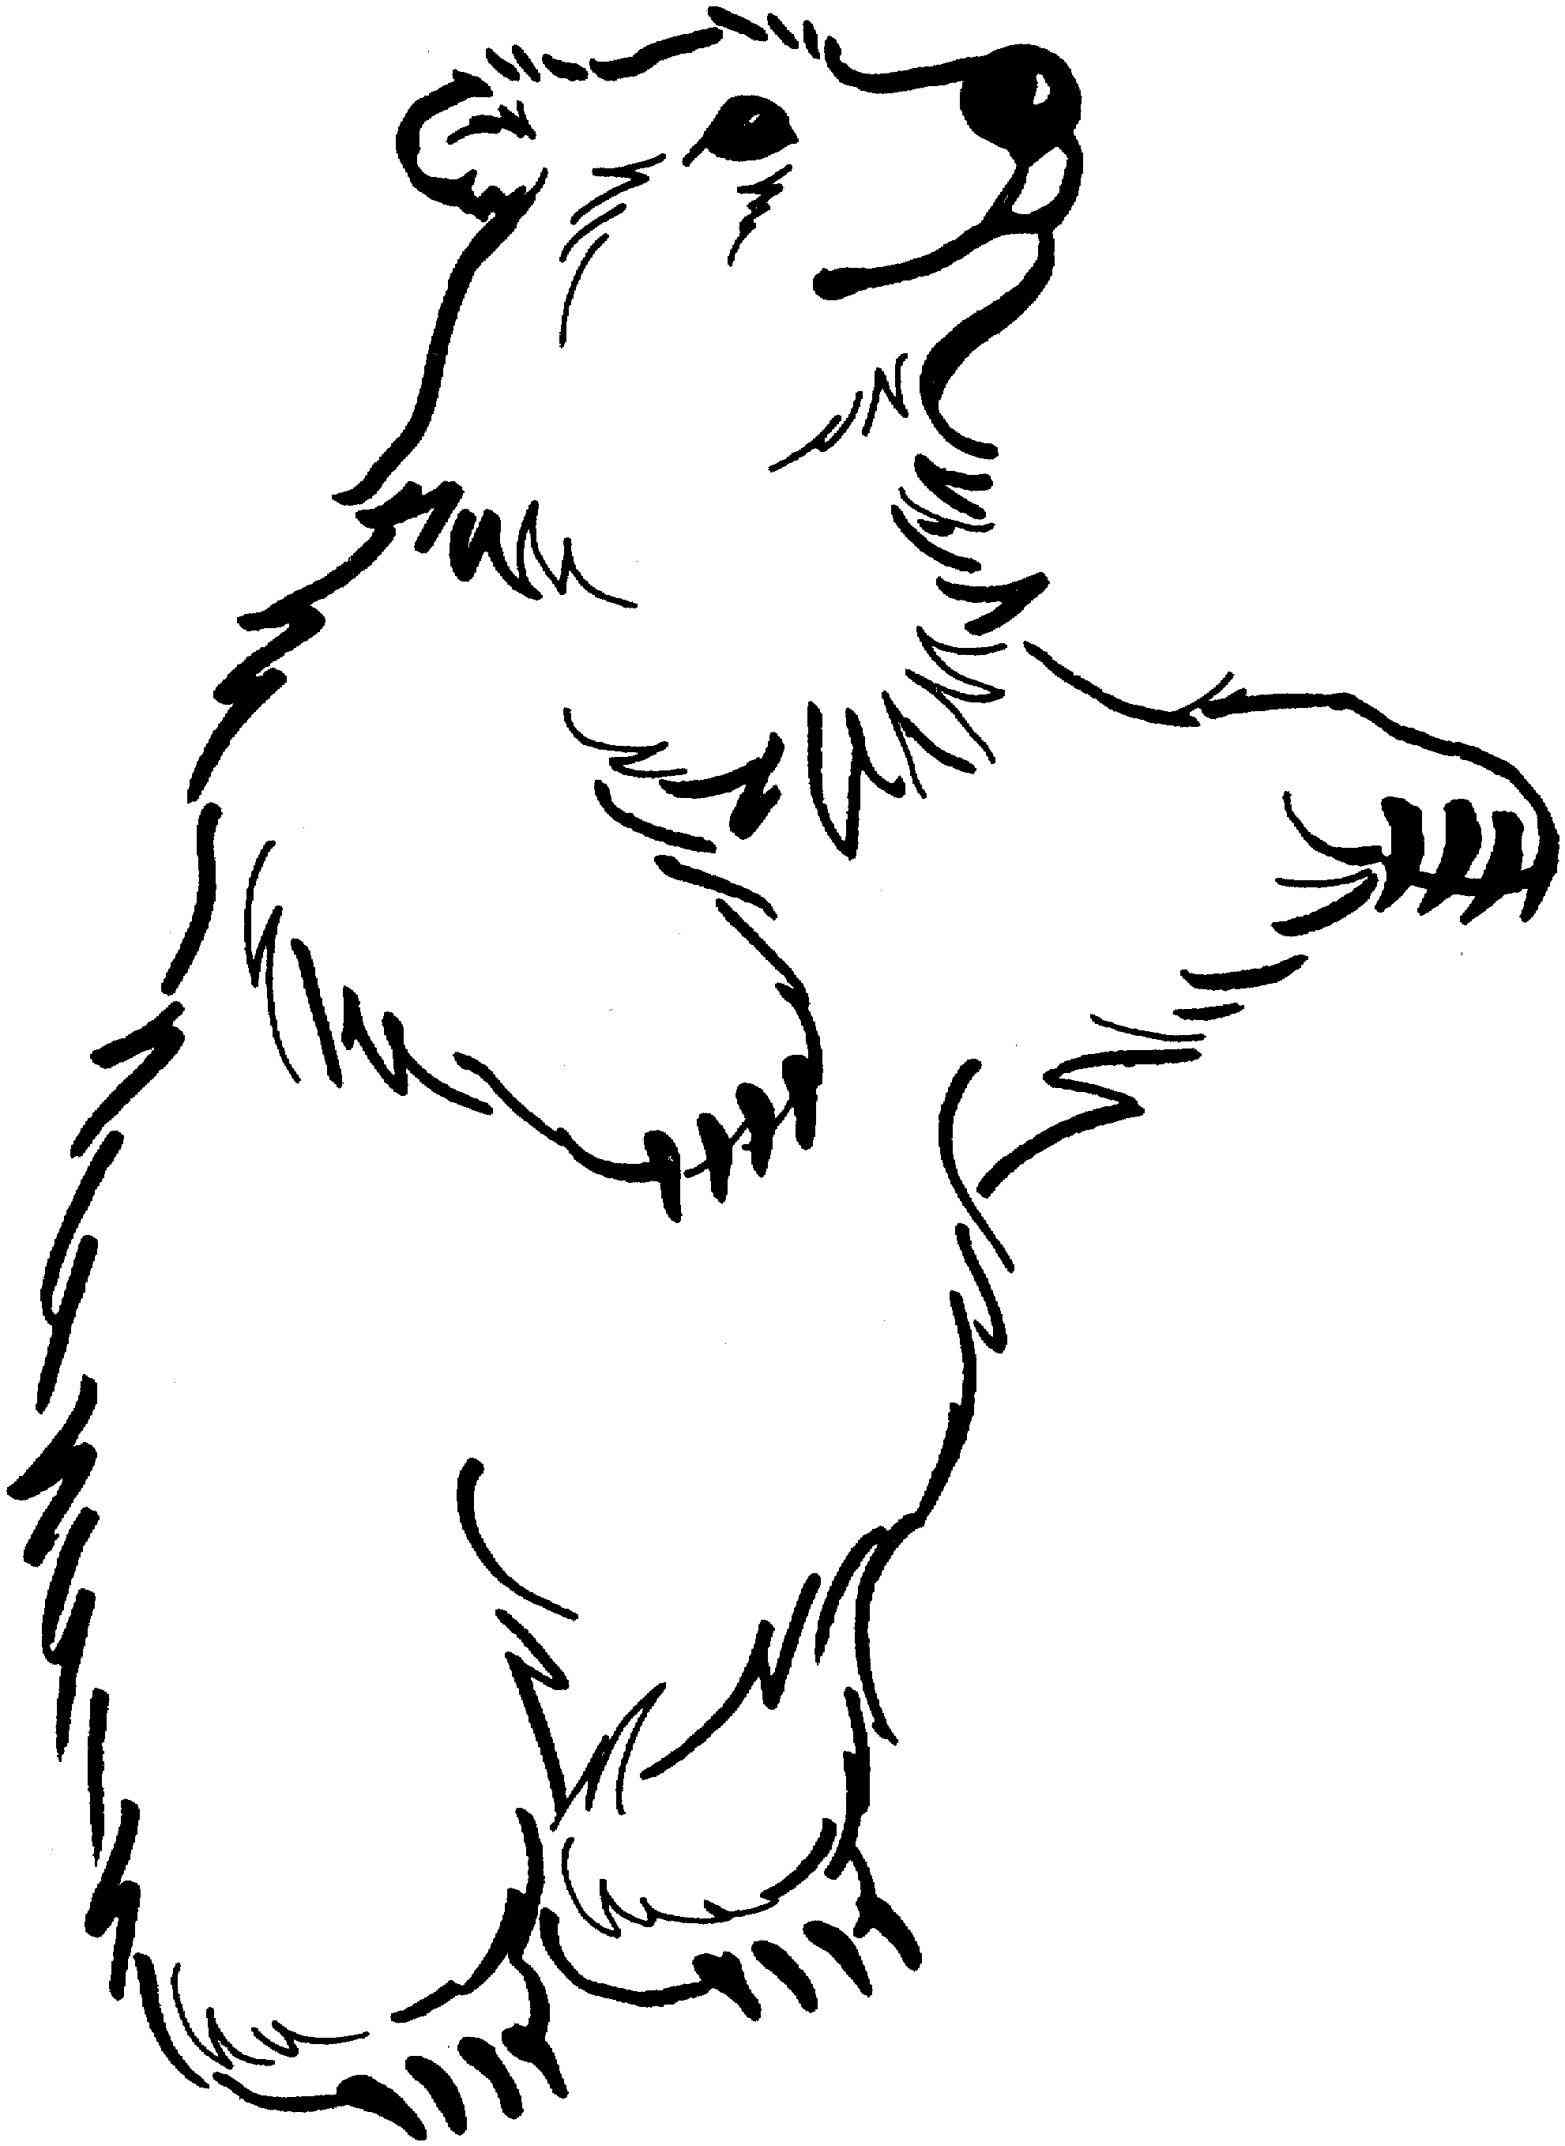 Bear clip art black and white. Awesome clipart gallery digital